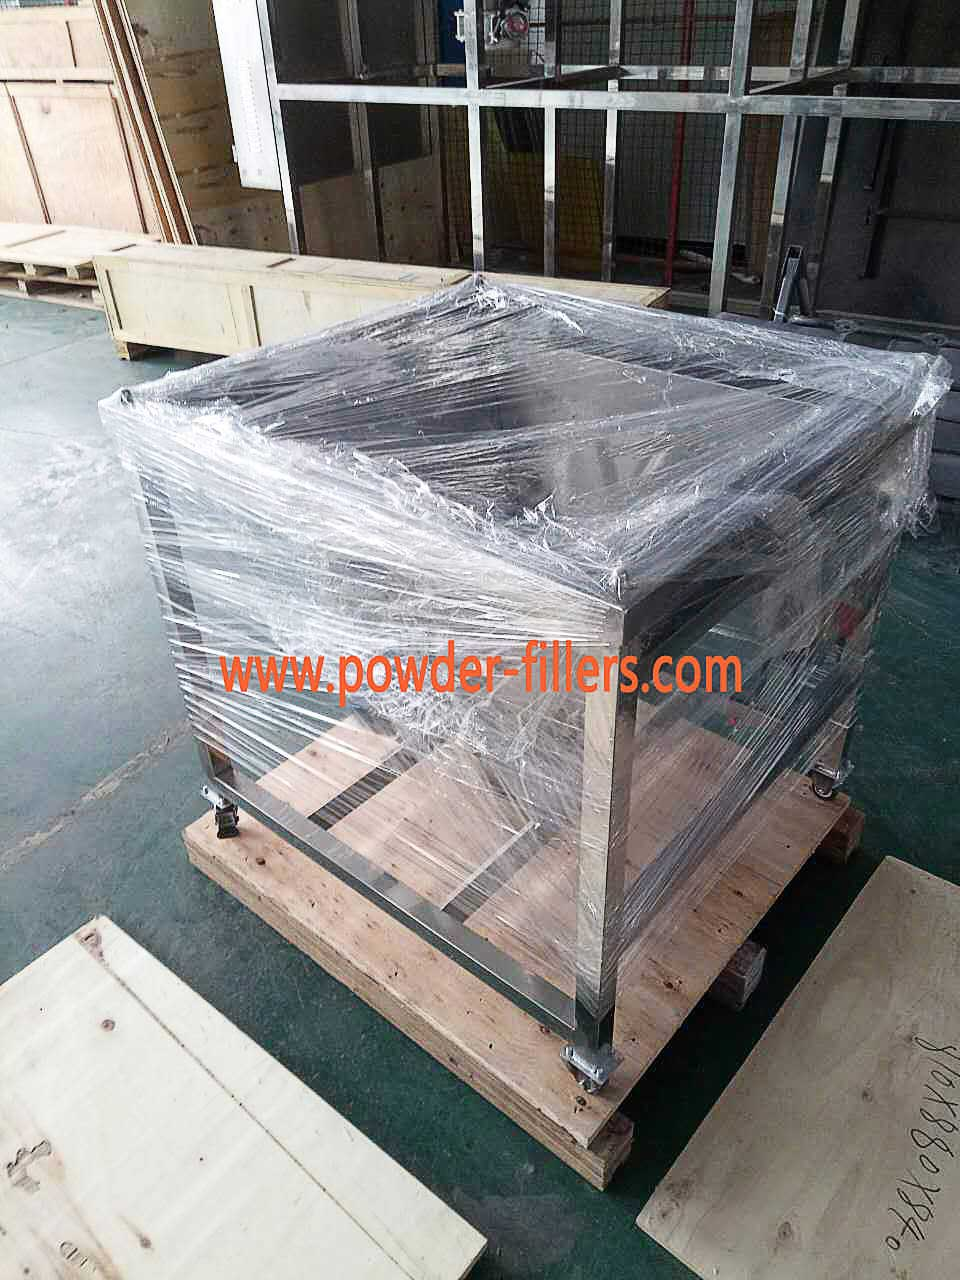 The Hopper of Screw Feeder packaging Plywood Boxes